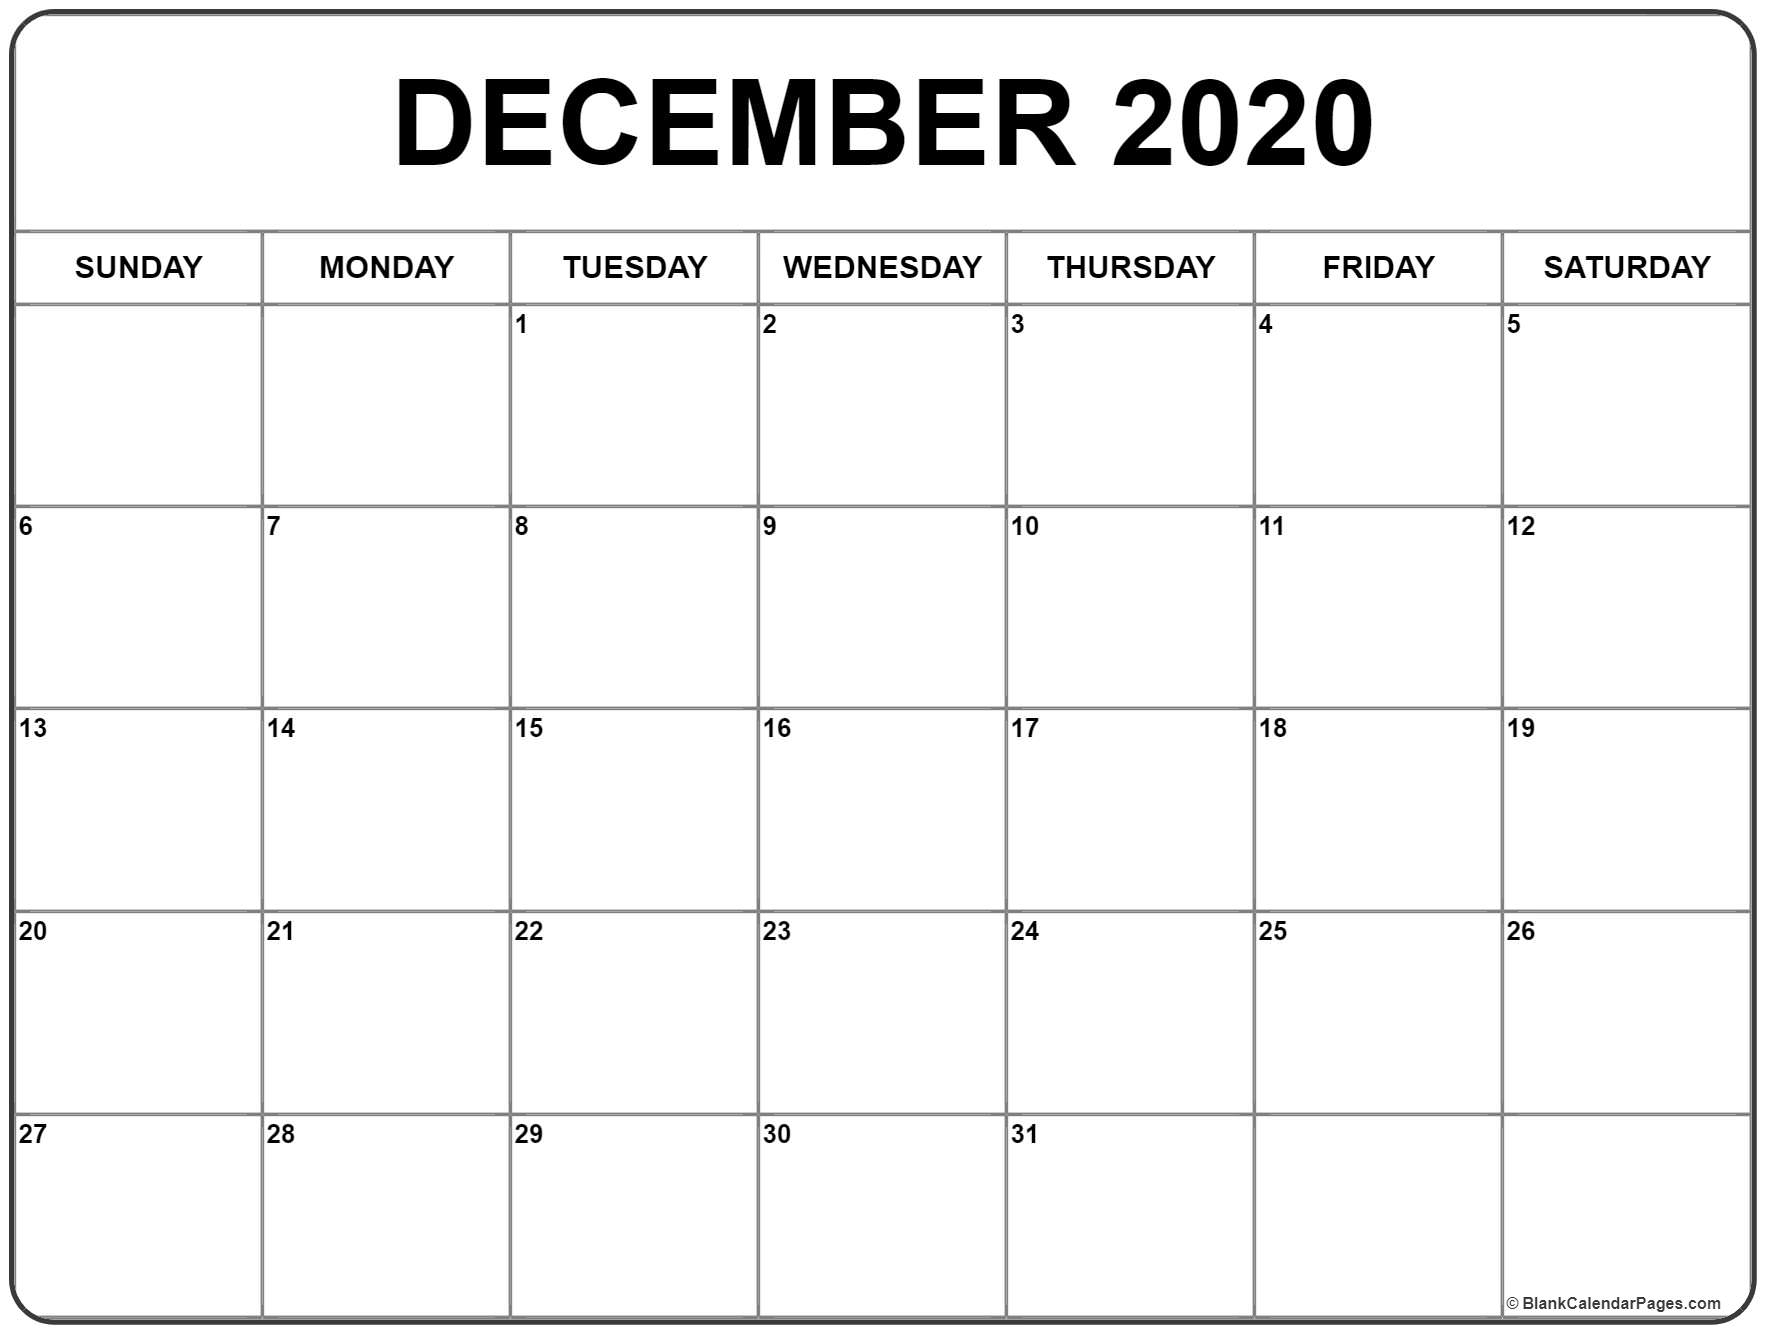 Blank Calendar December 2020  Bolan.horizonconsulting.co intended for Calendar 2020 December